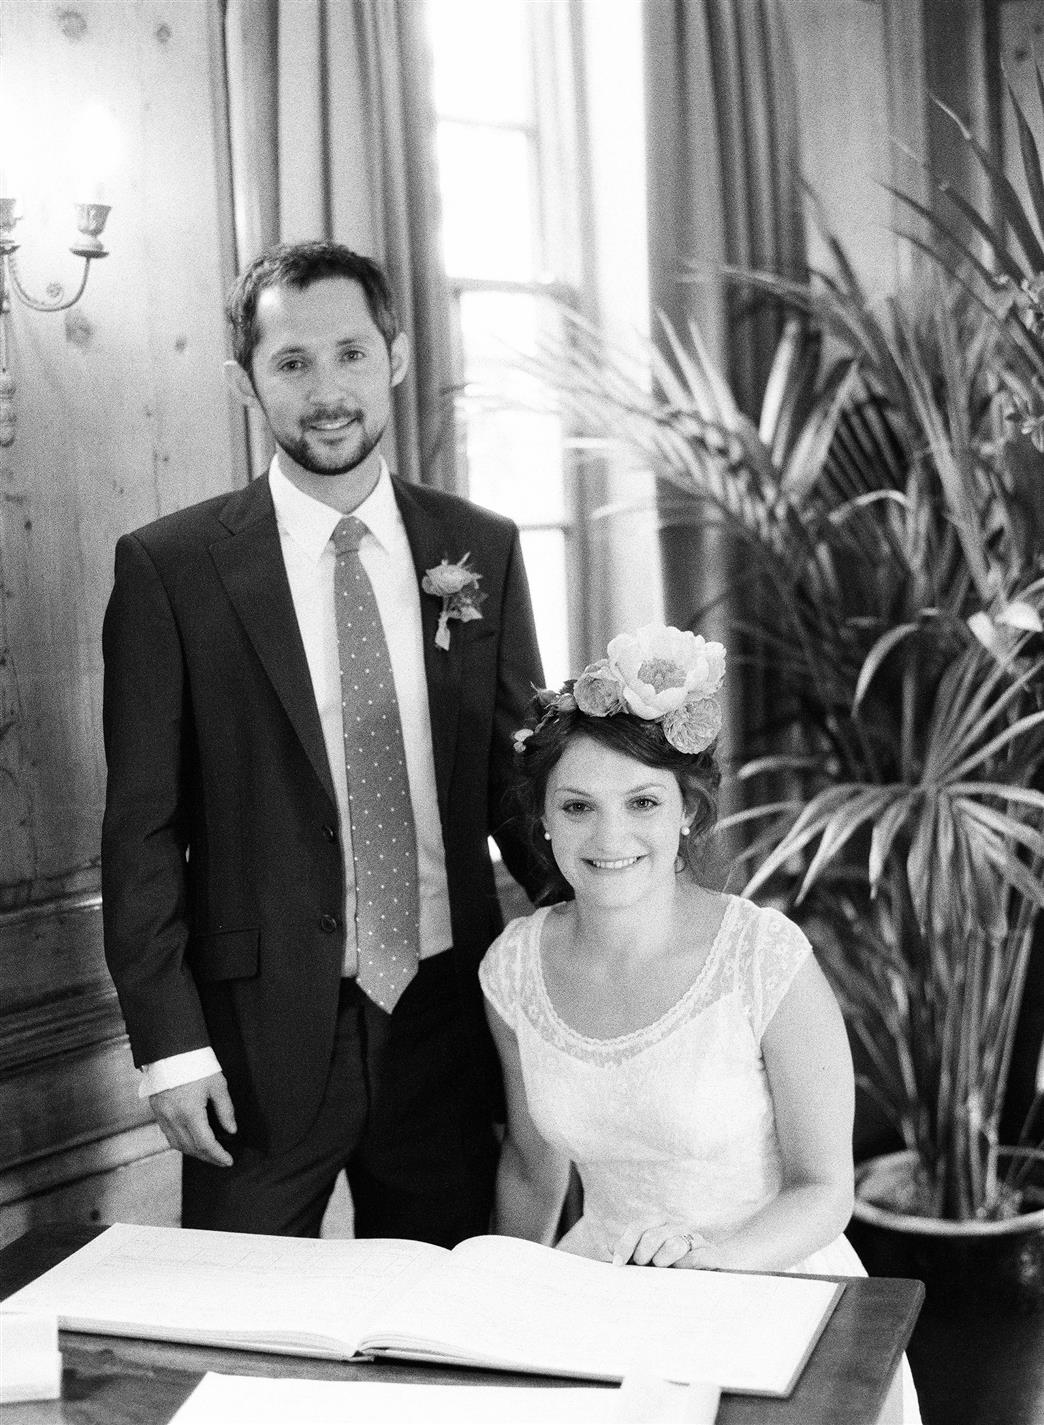 Wedding Ceremony - A 1940s Wedding Dress for a Sweet Early Summer Wedding from Taylor & Porter Photography